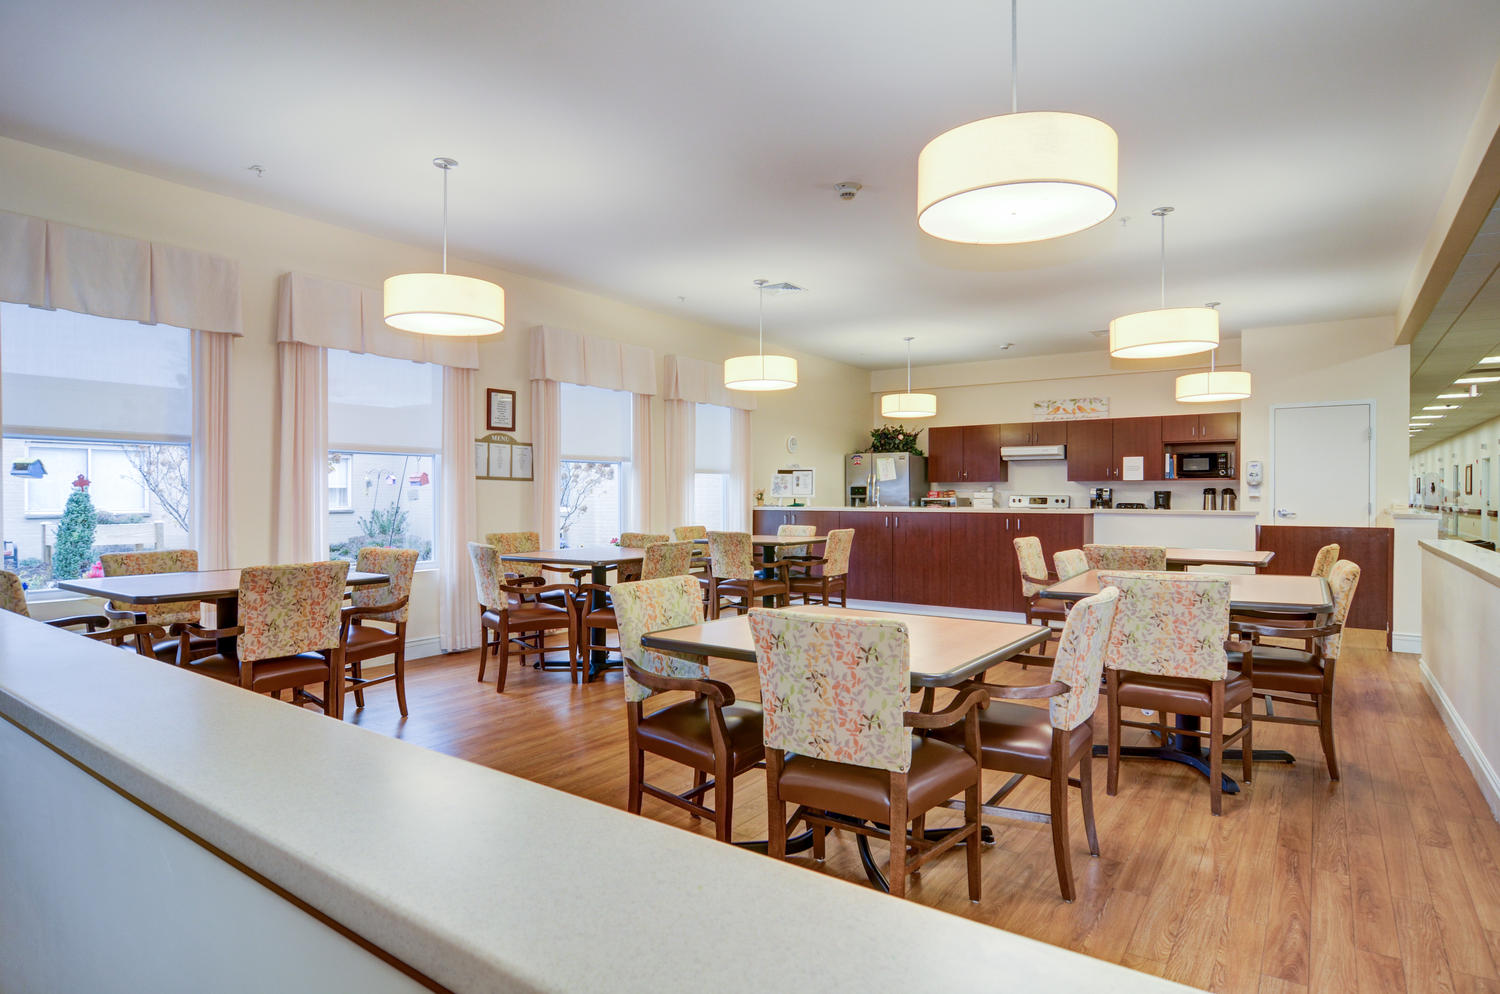 Stonerise Morgantown Memory Care dining room with colorful chairs and kitchen area